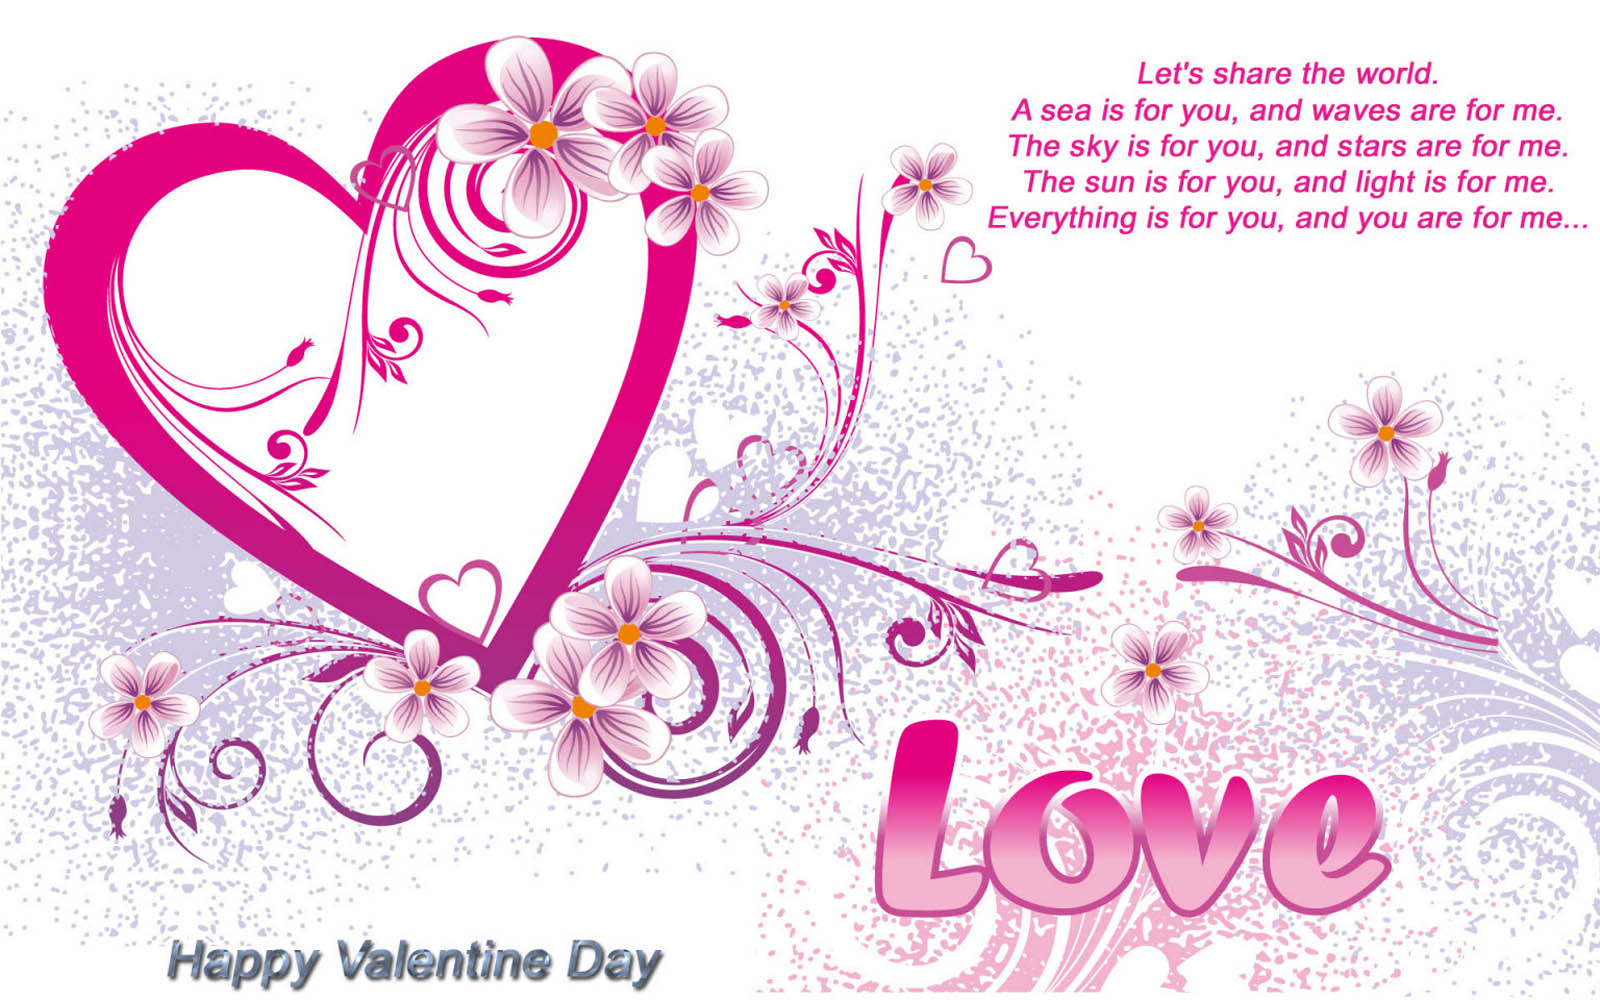 Wallpaper valentines day greetings valentines day greetings m4hsunfo